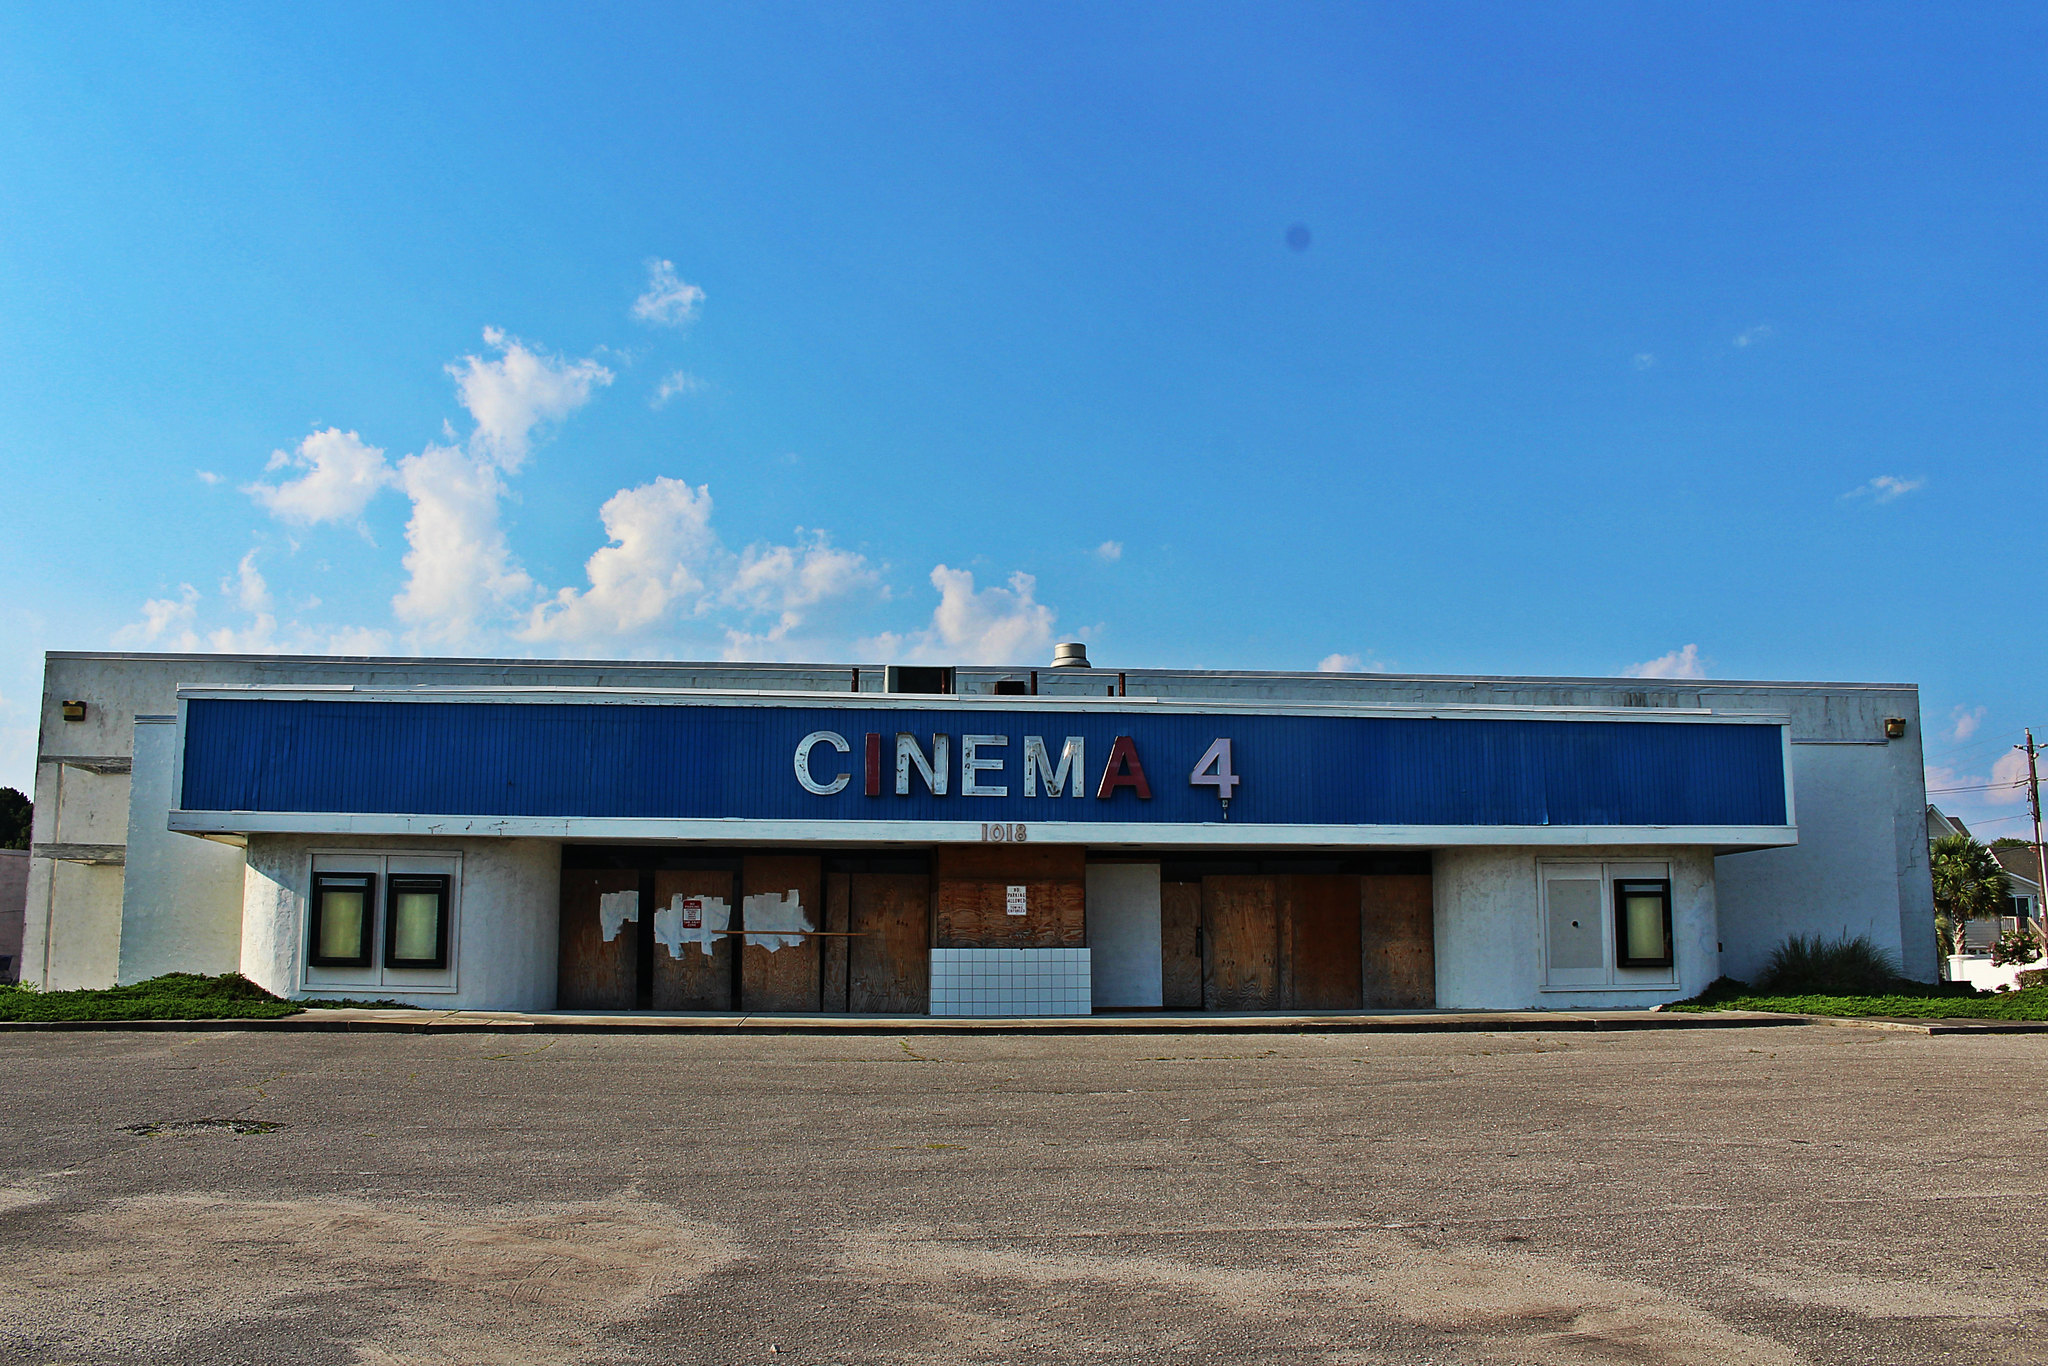 Cinema 4 --  Carolina Beach, North Carolina